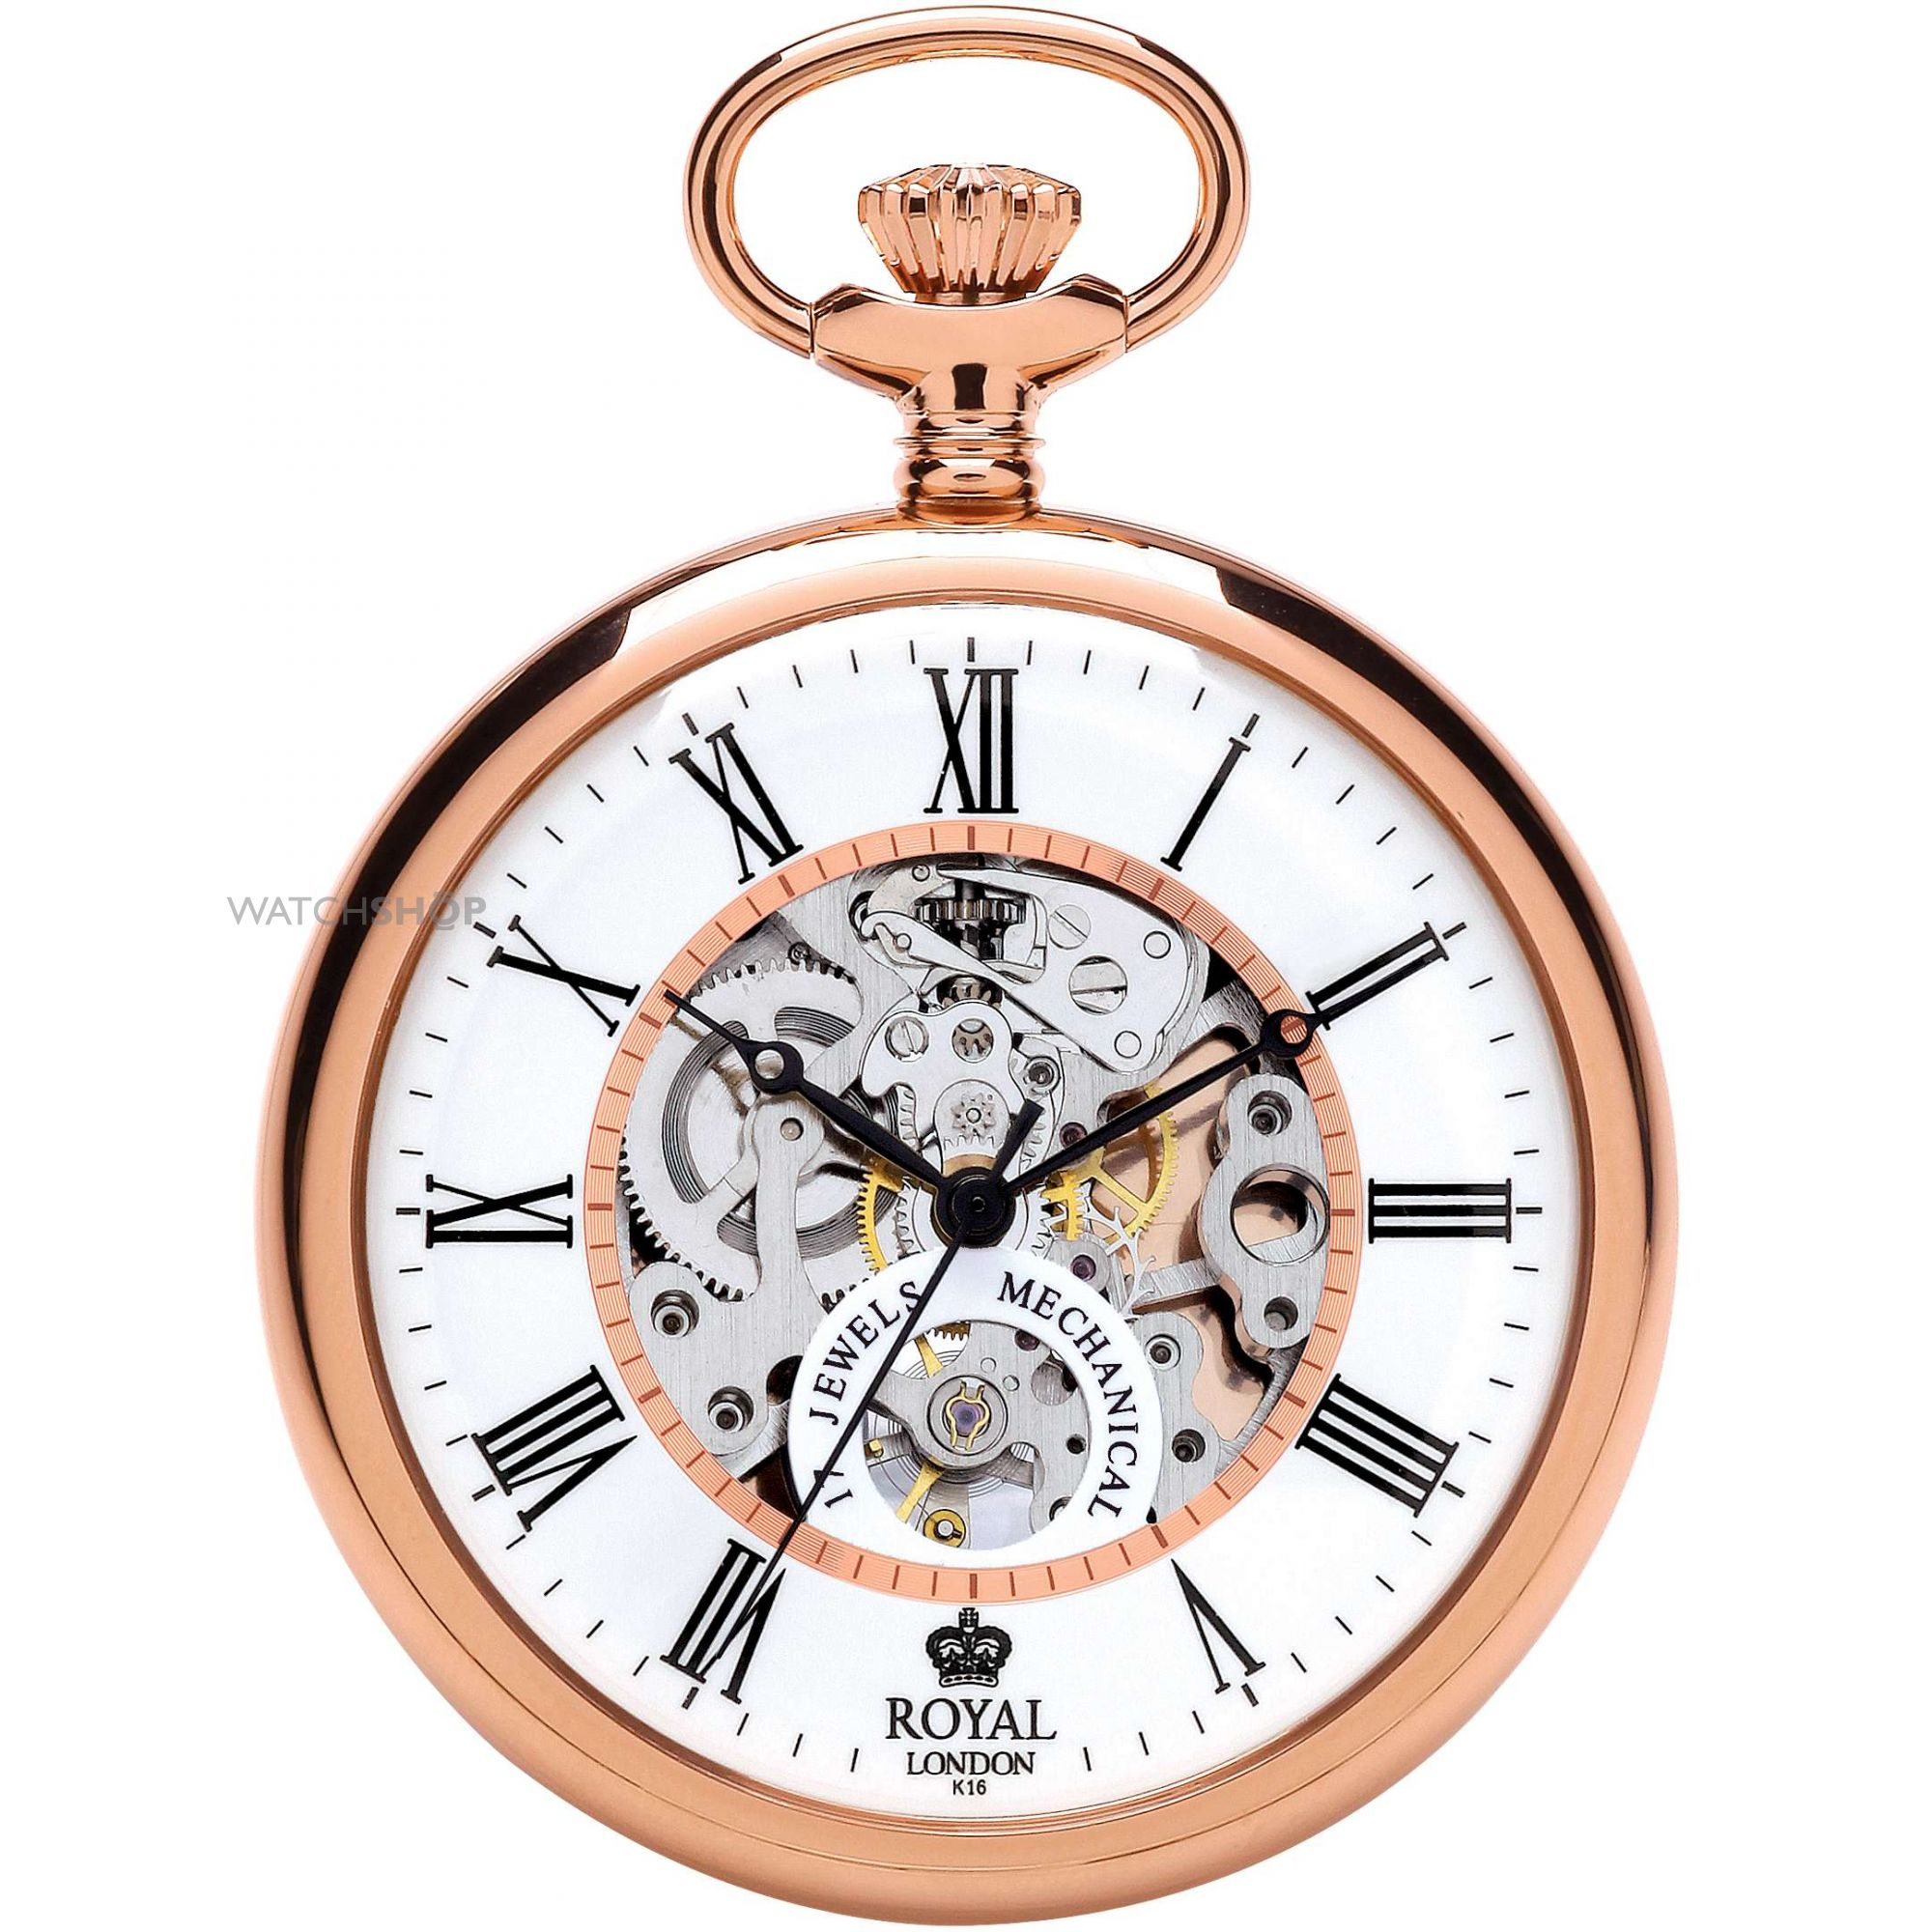 royal london mechanical watch 90049-03 crcwyaw